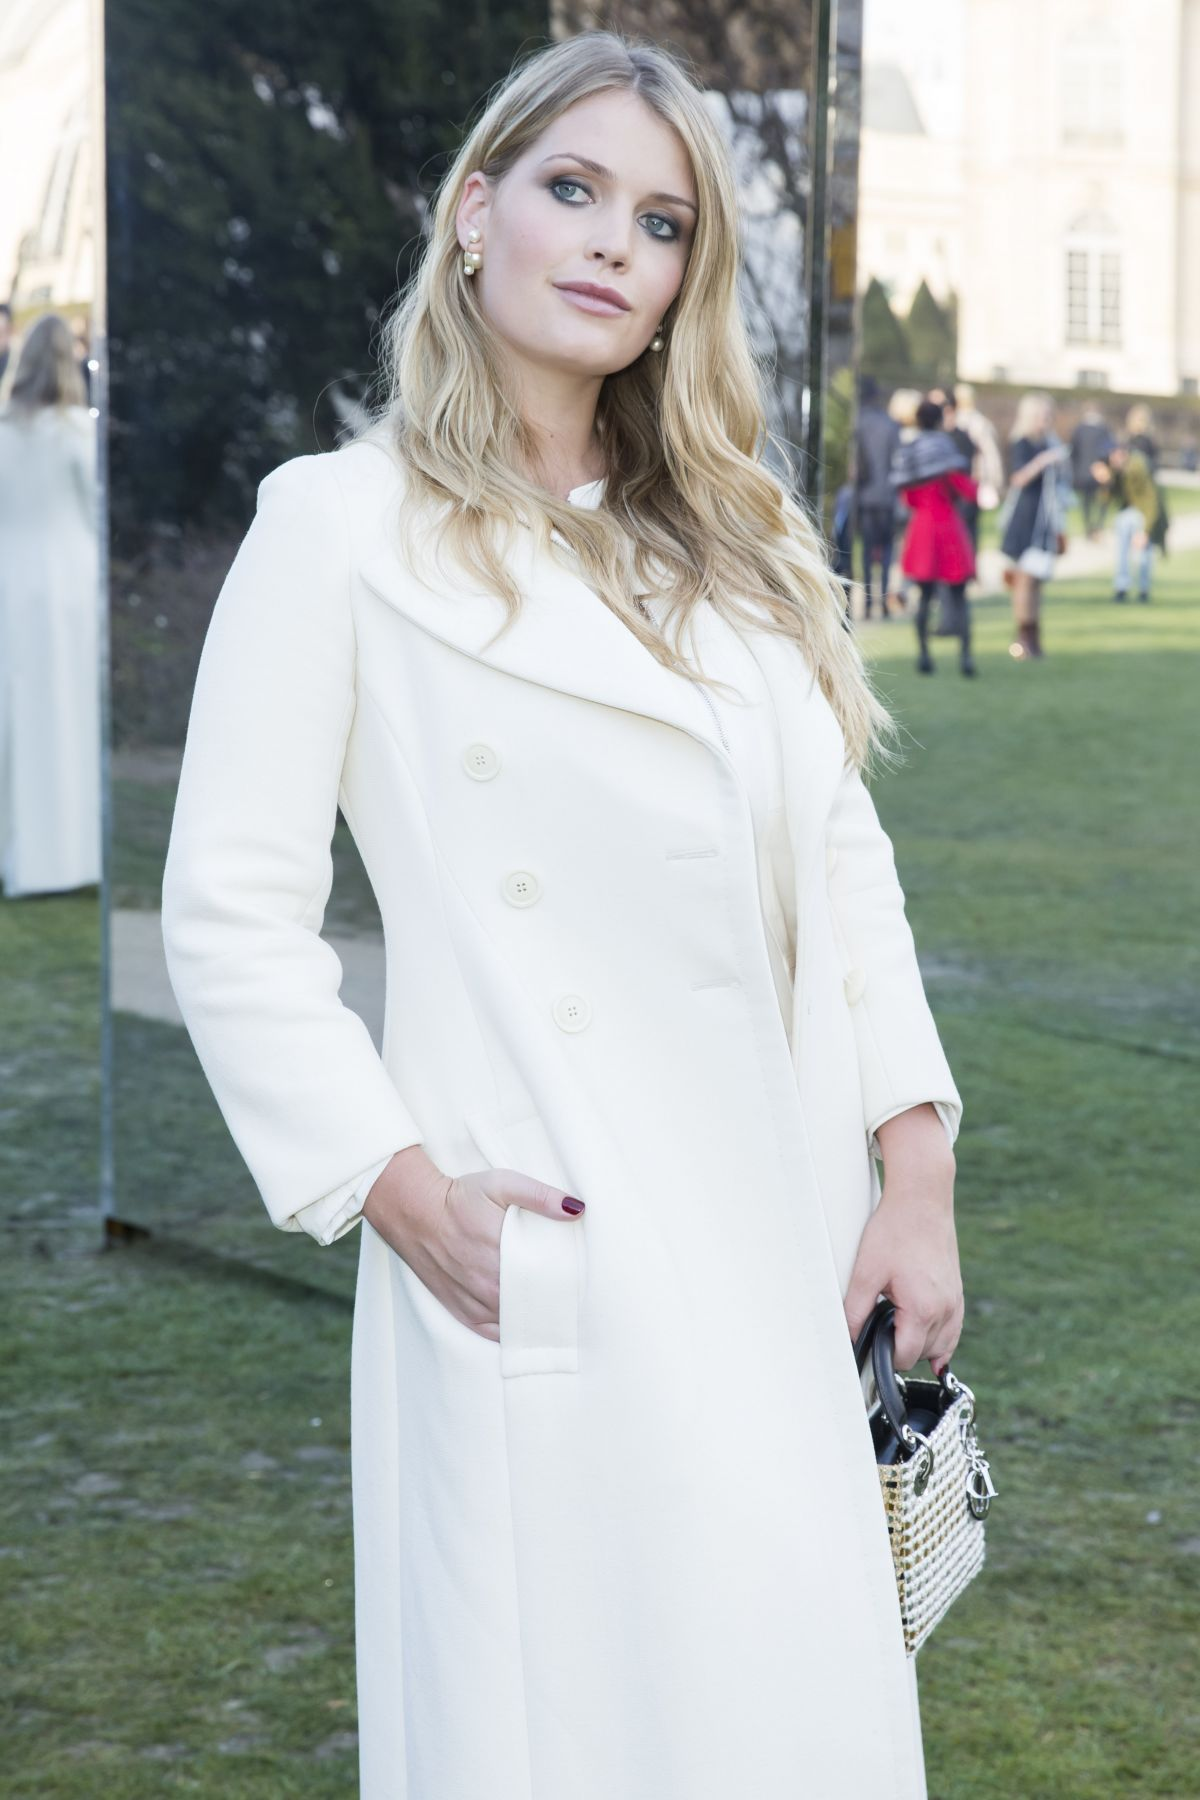 KITTY SPENCER at Christian Dior Fashion Show in Paris 01/25/2016